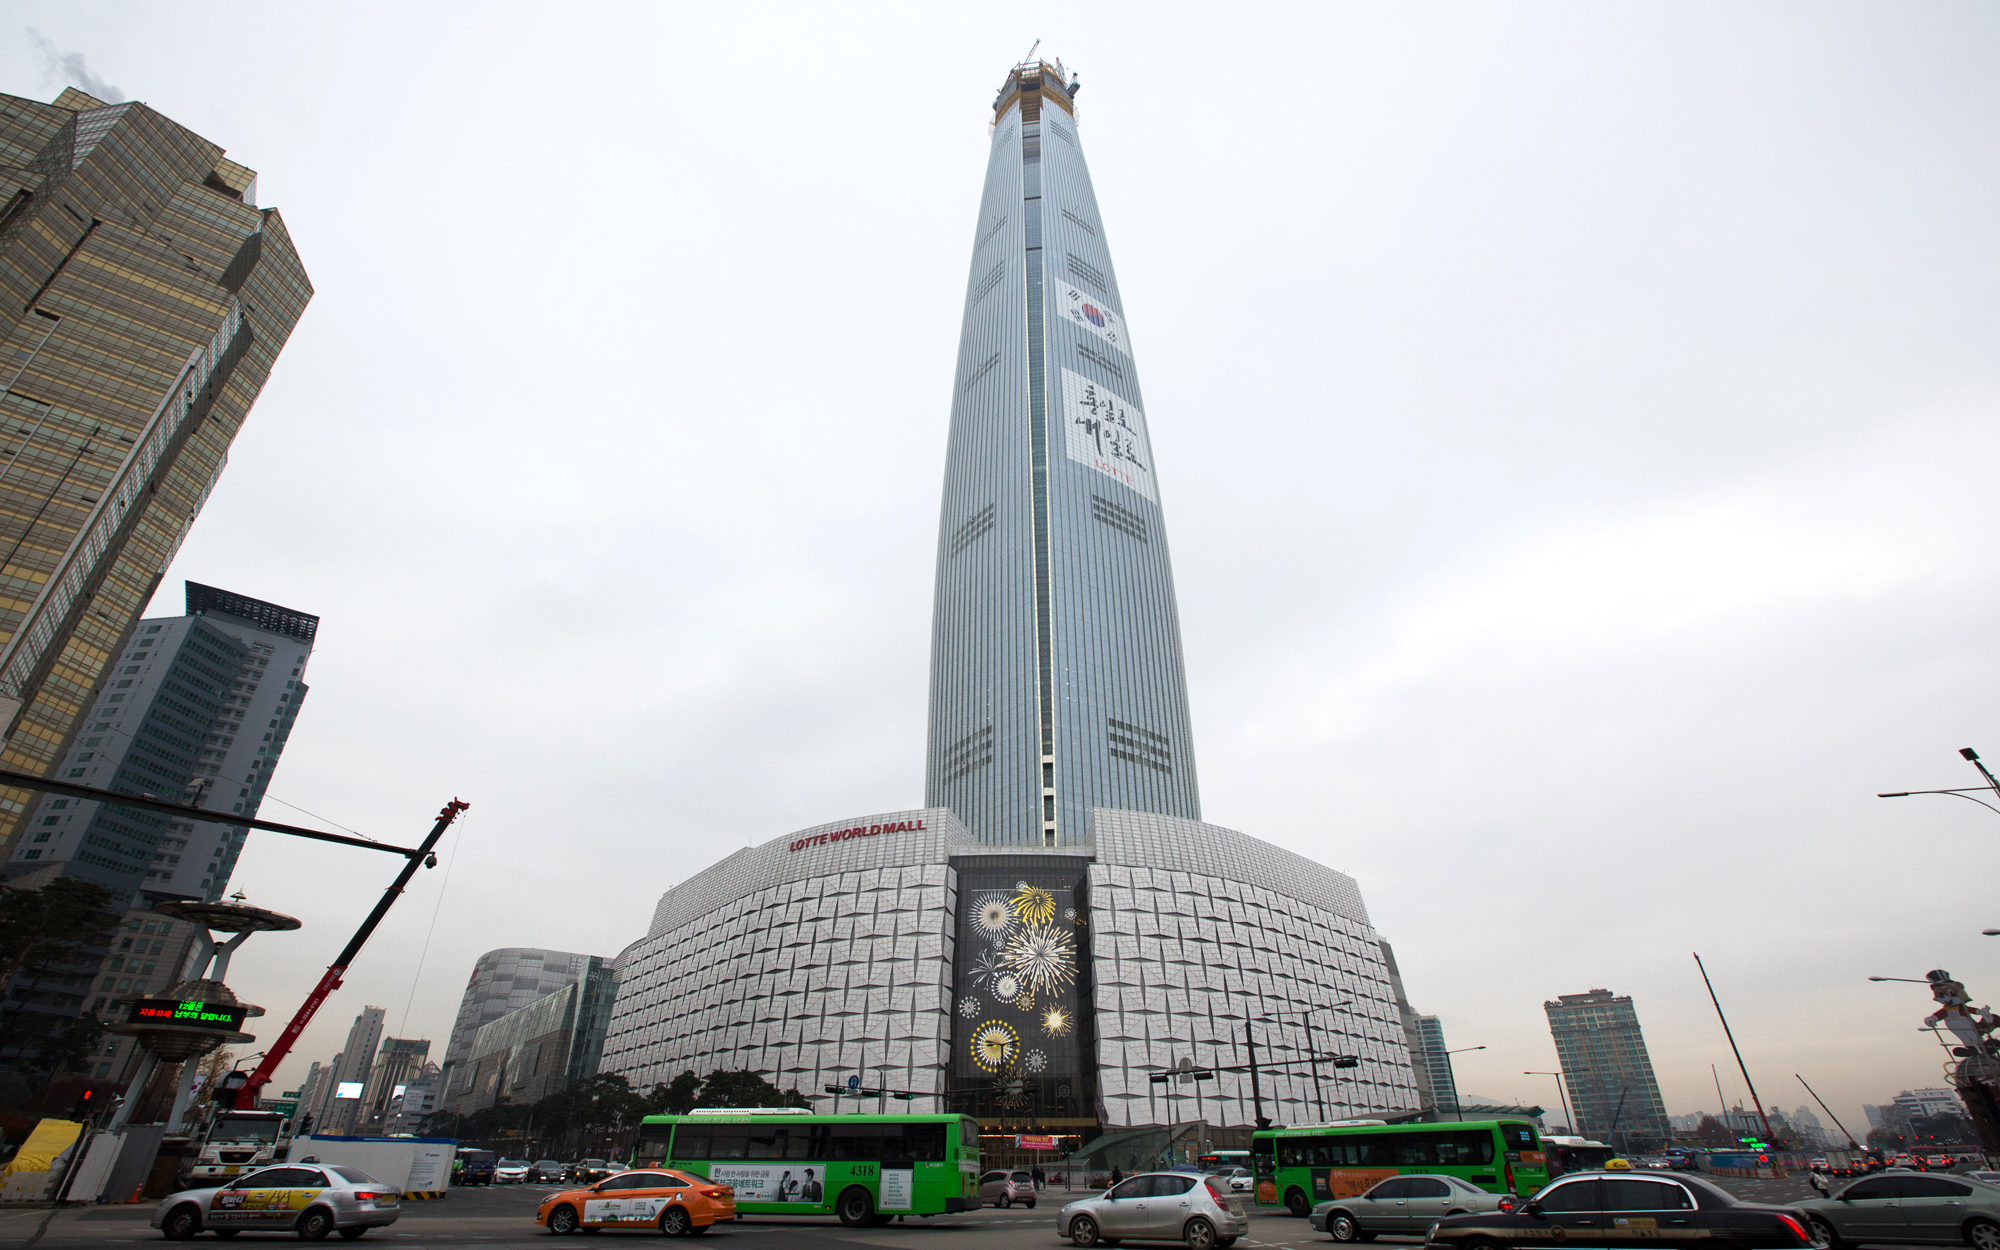 5. Lotte World Tower, Seoul (1,823 feet)